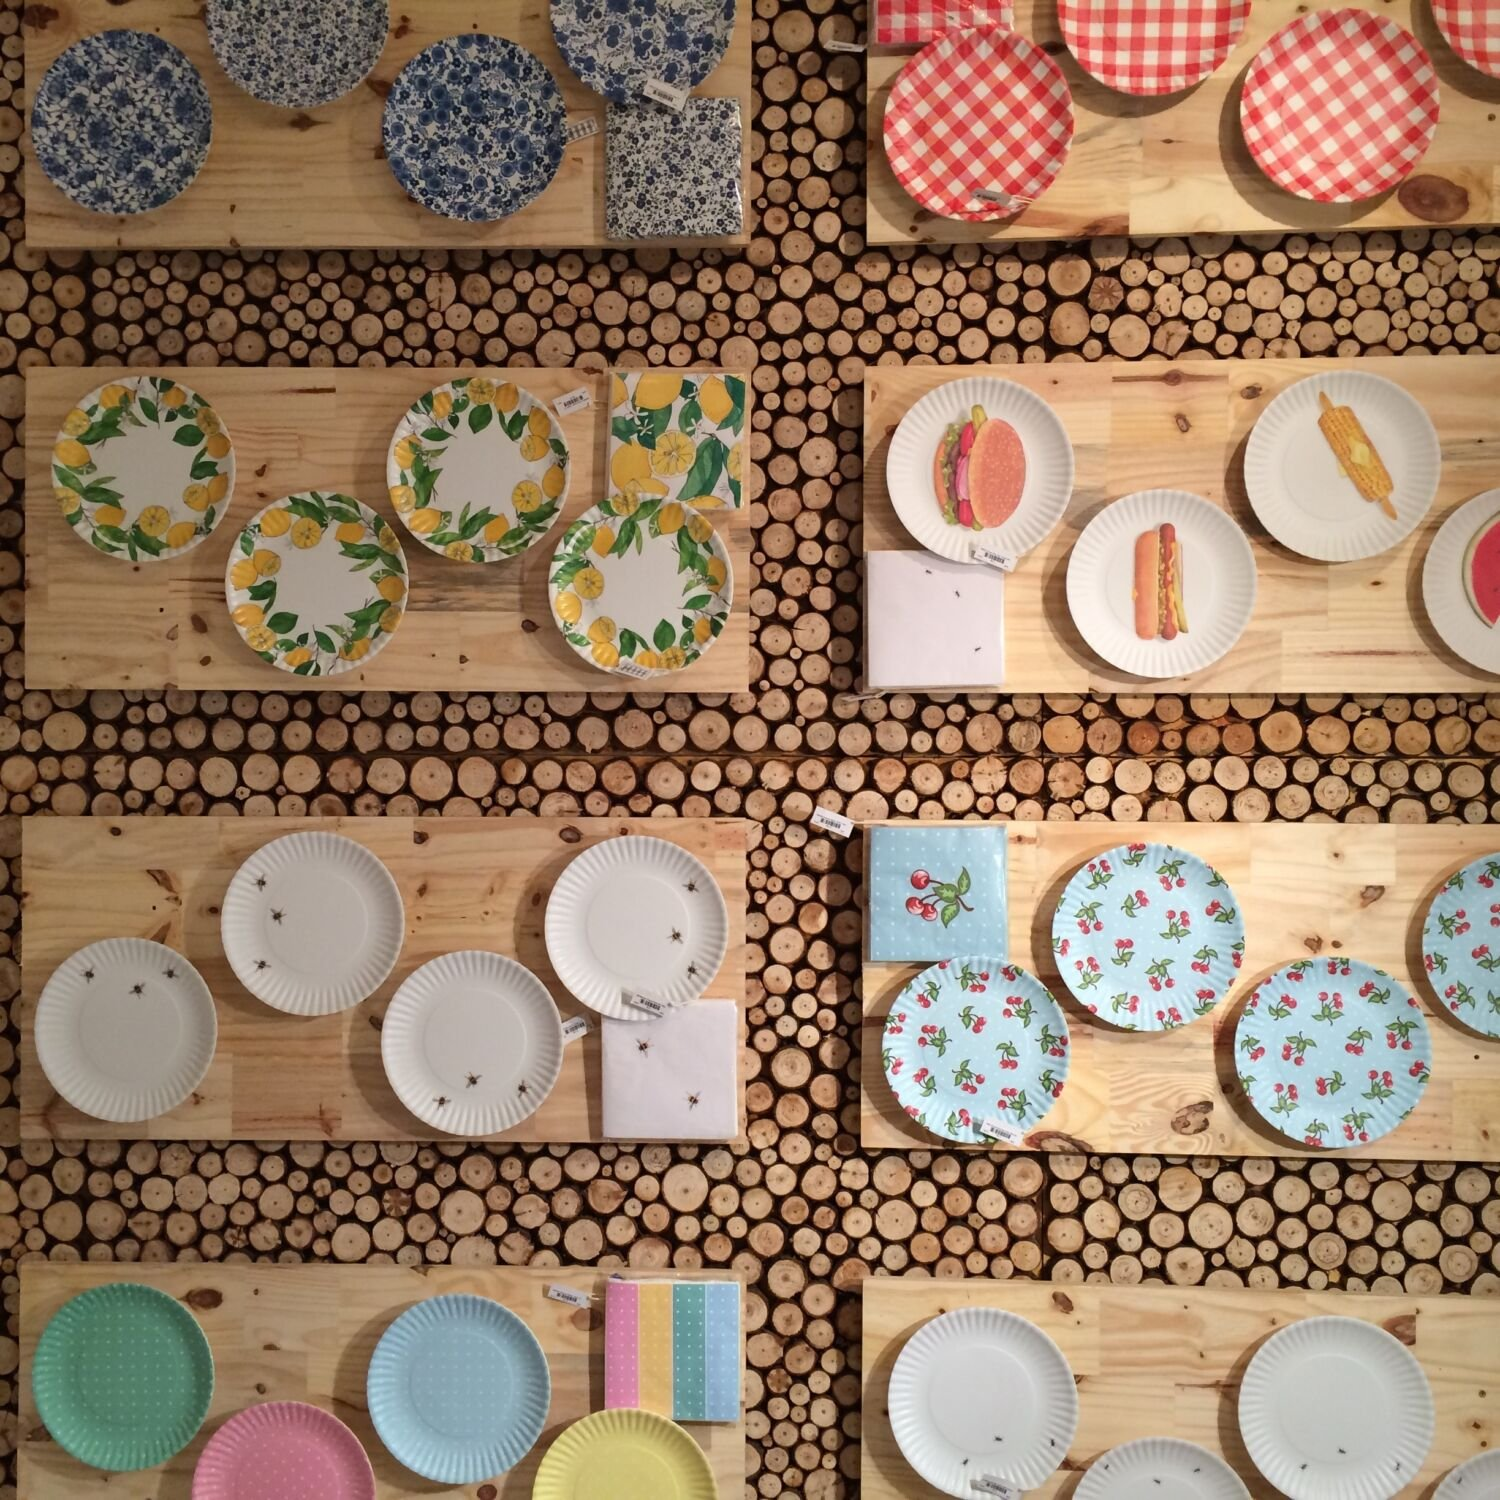 & Melamine Madness: Fall in Love with non breakable colorful dinnerware